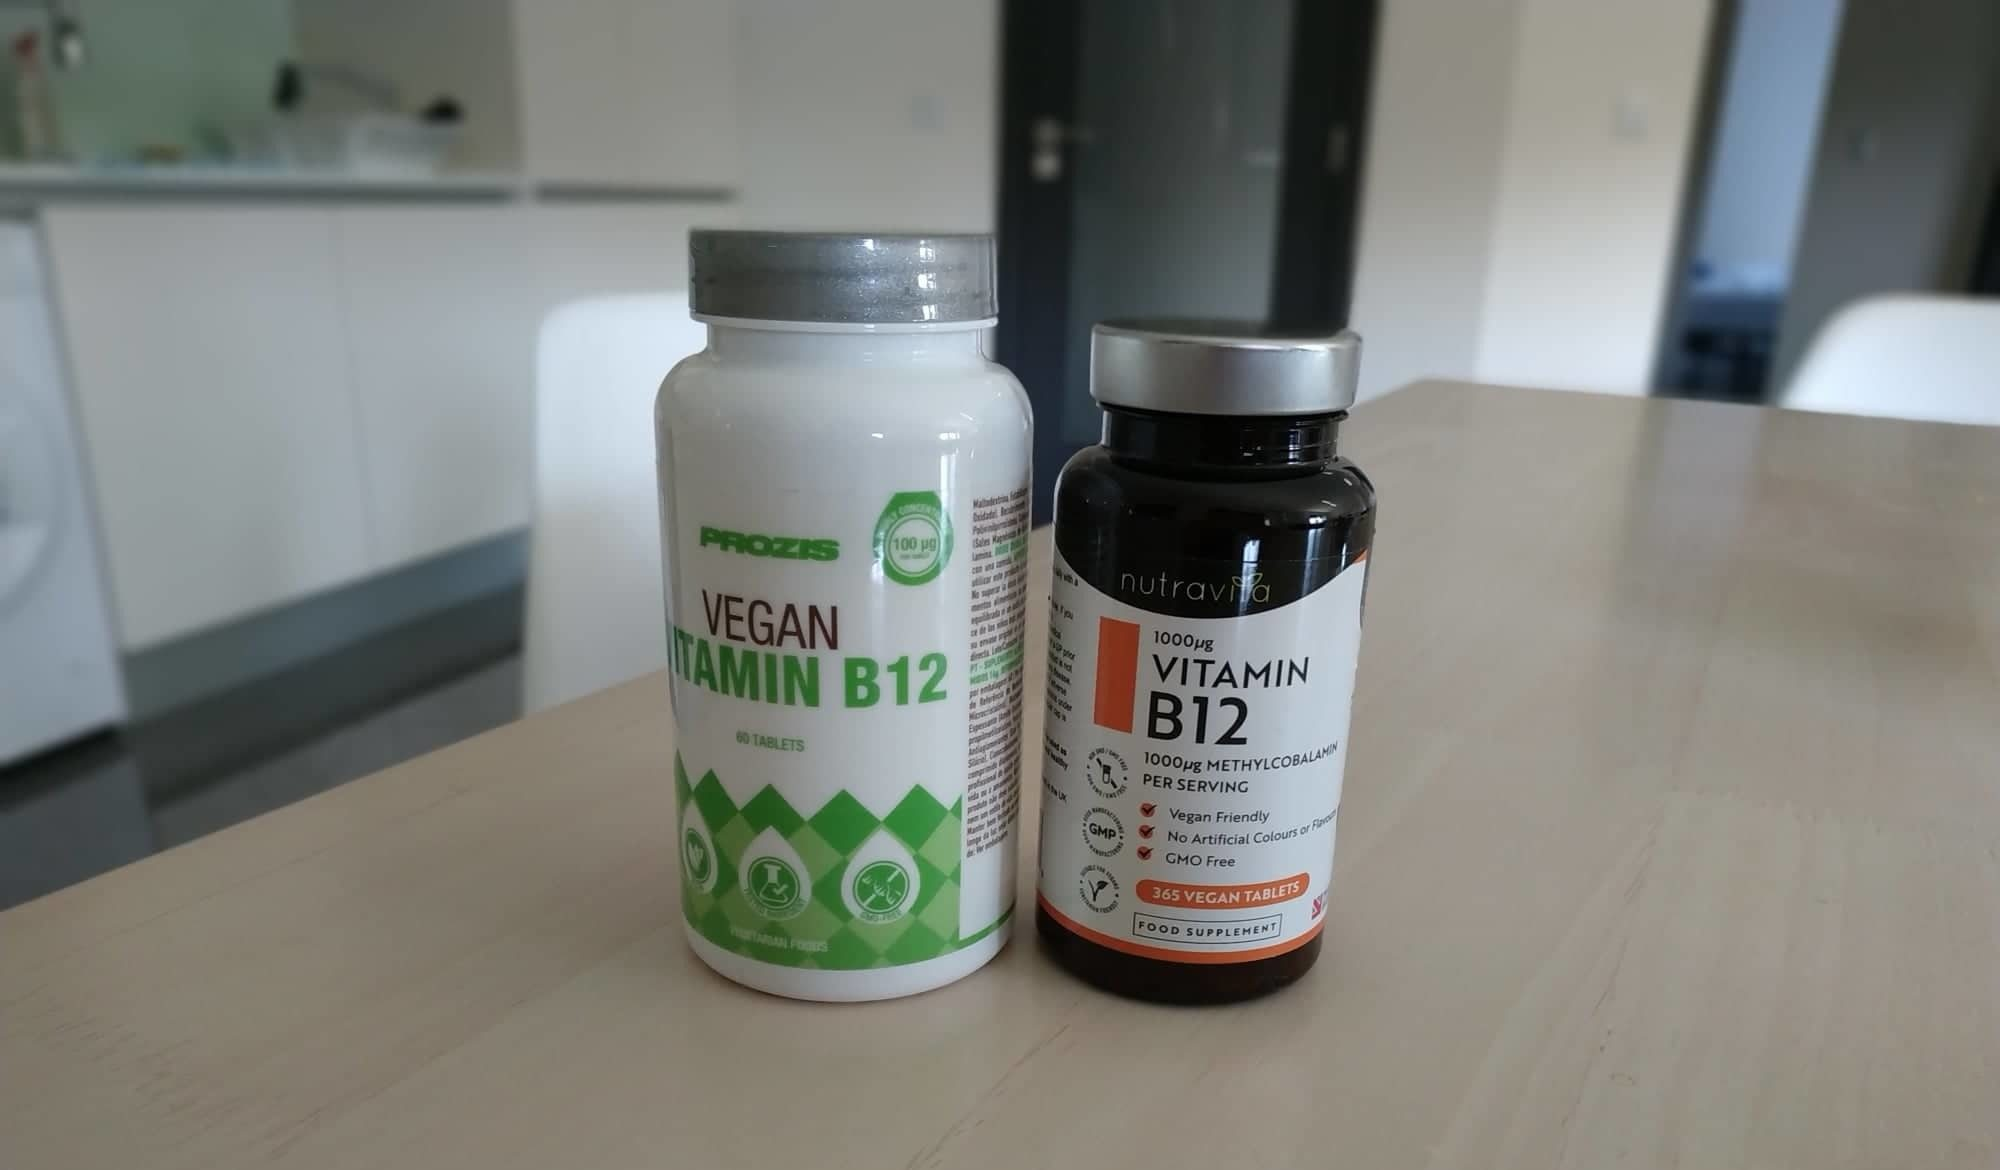 Vitamin b12: before and after